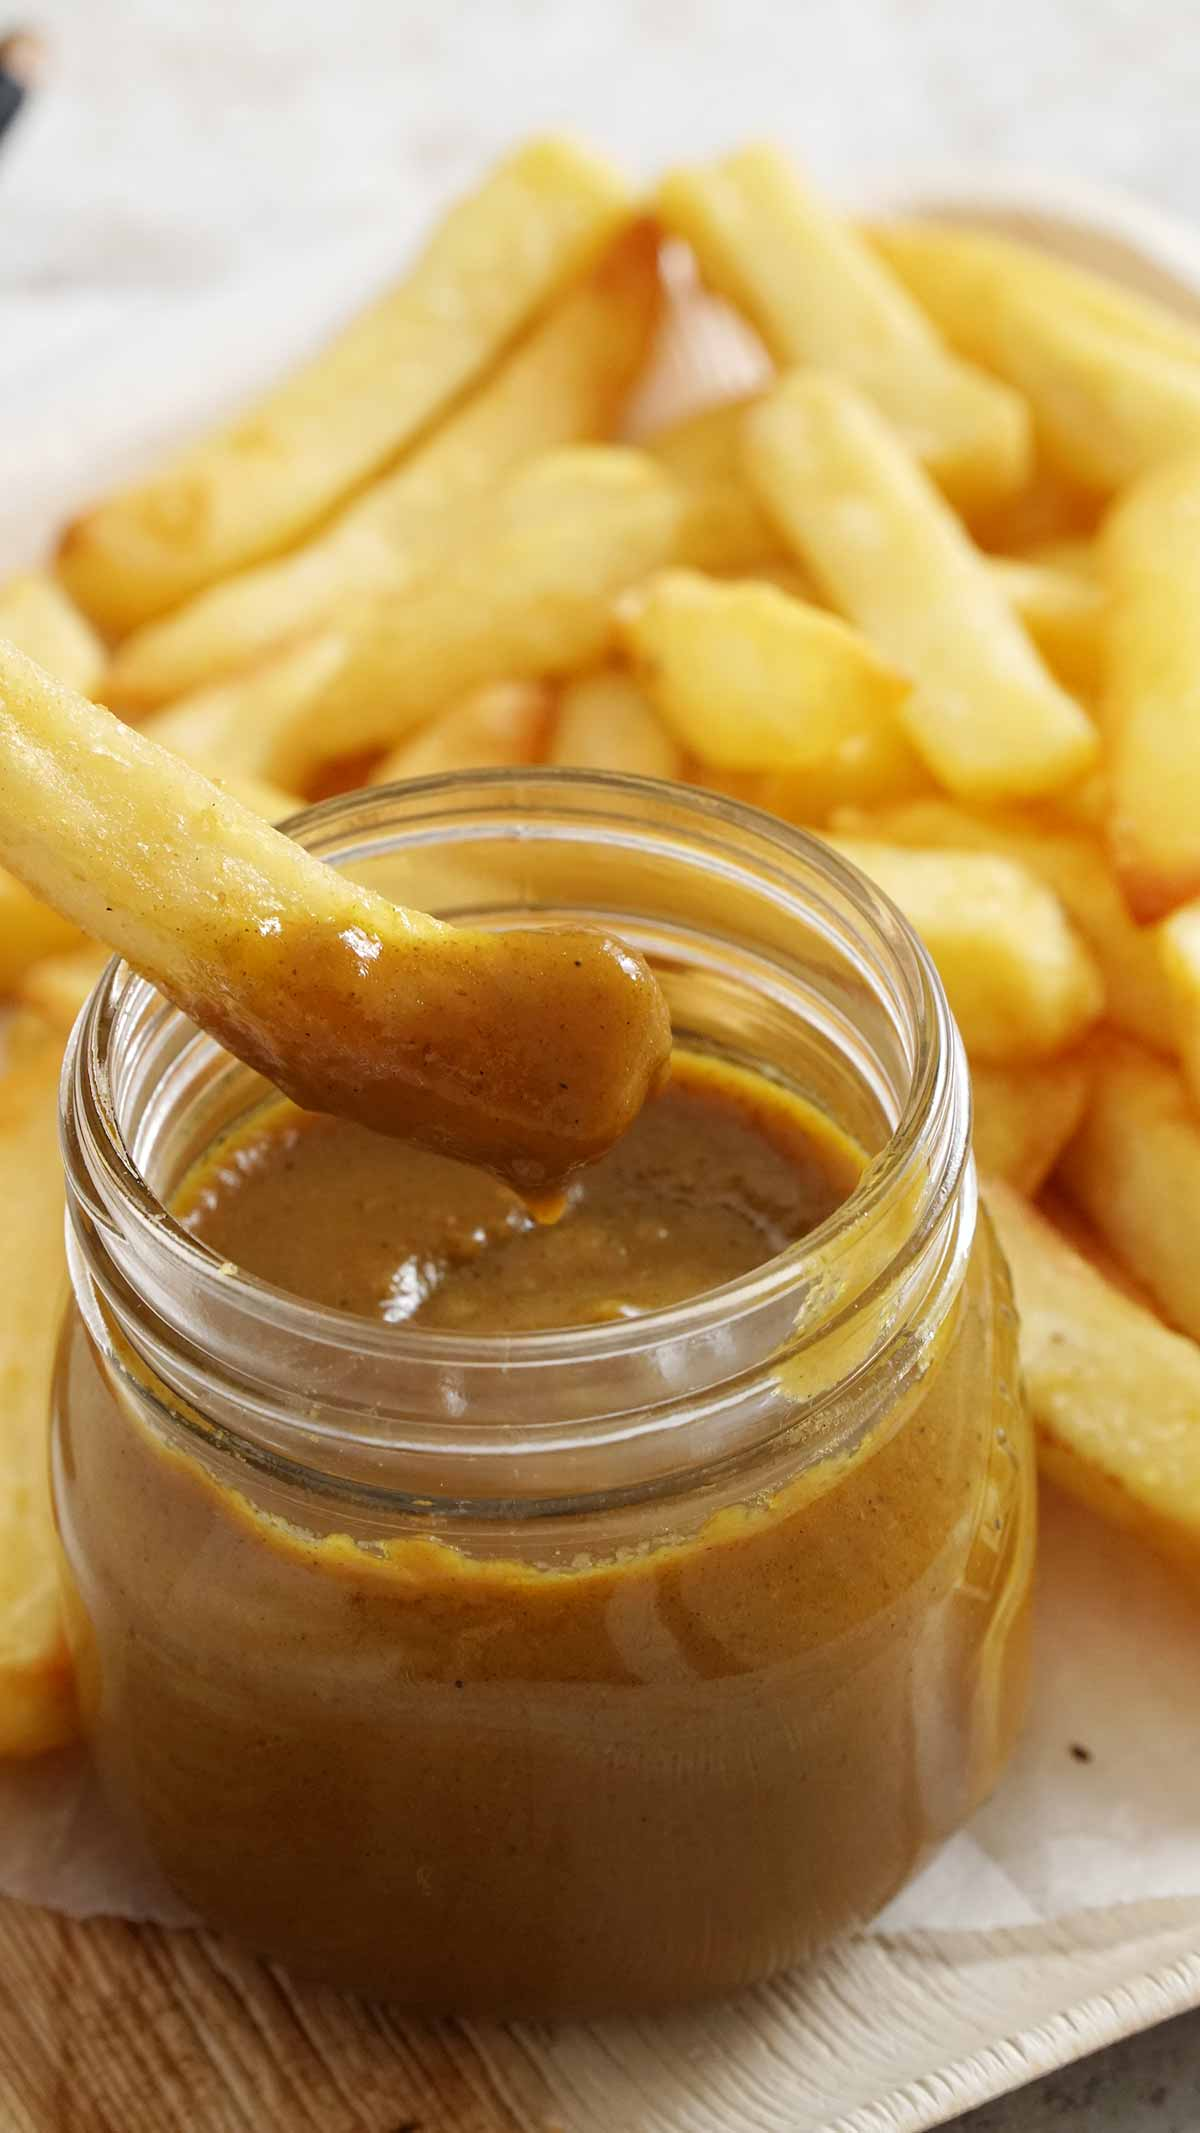 Close up view of chip is being dipped in the chinse curry sauce.